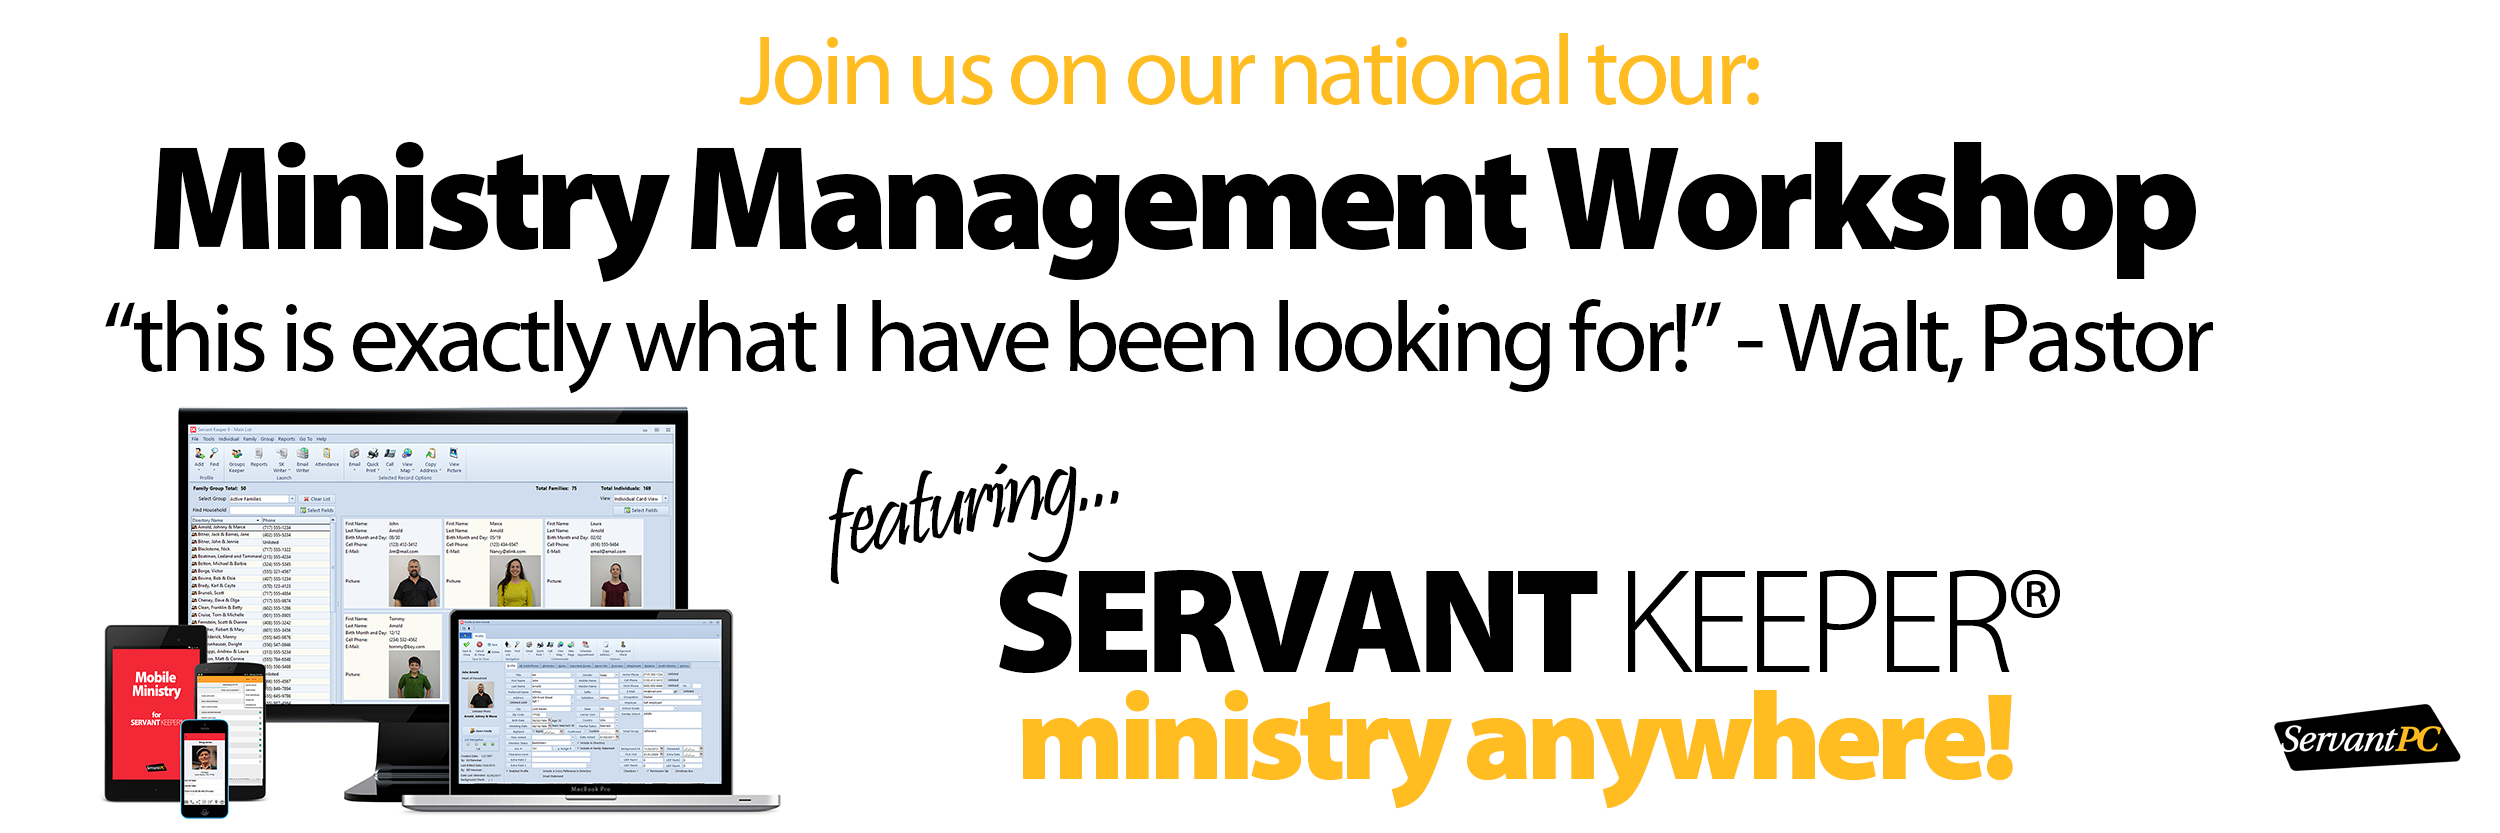 Servant Keeper How to Grow Ministry Workshop Banner